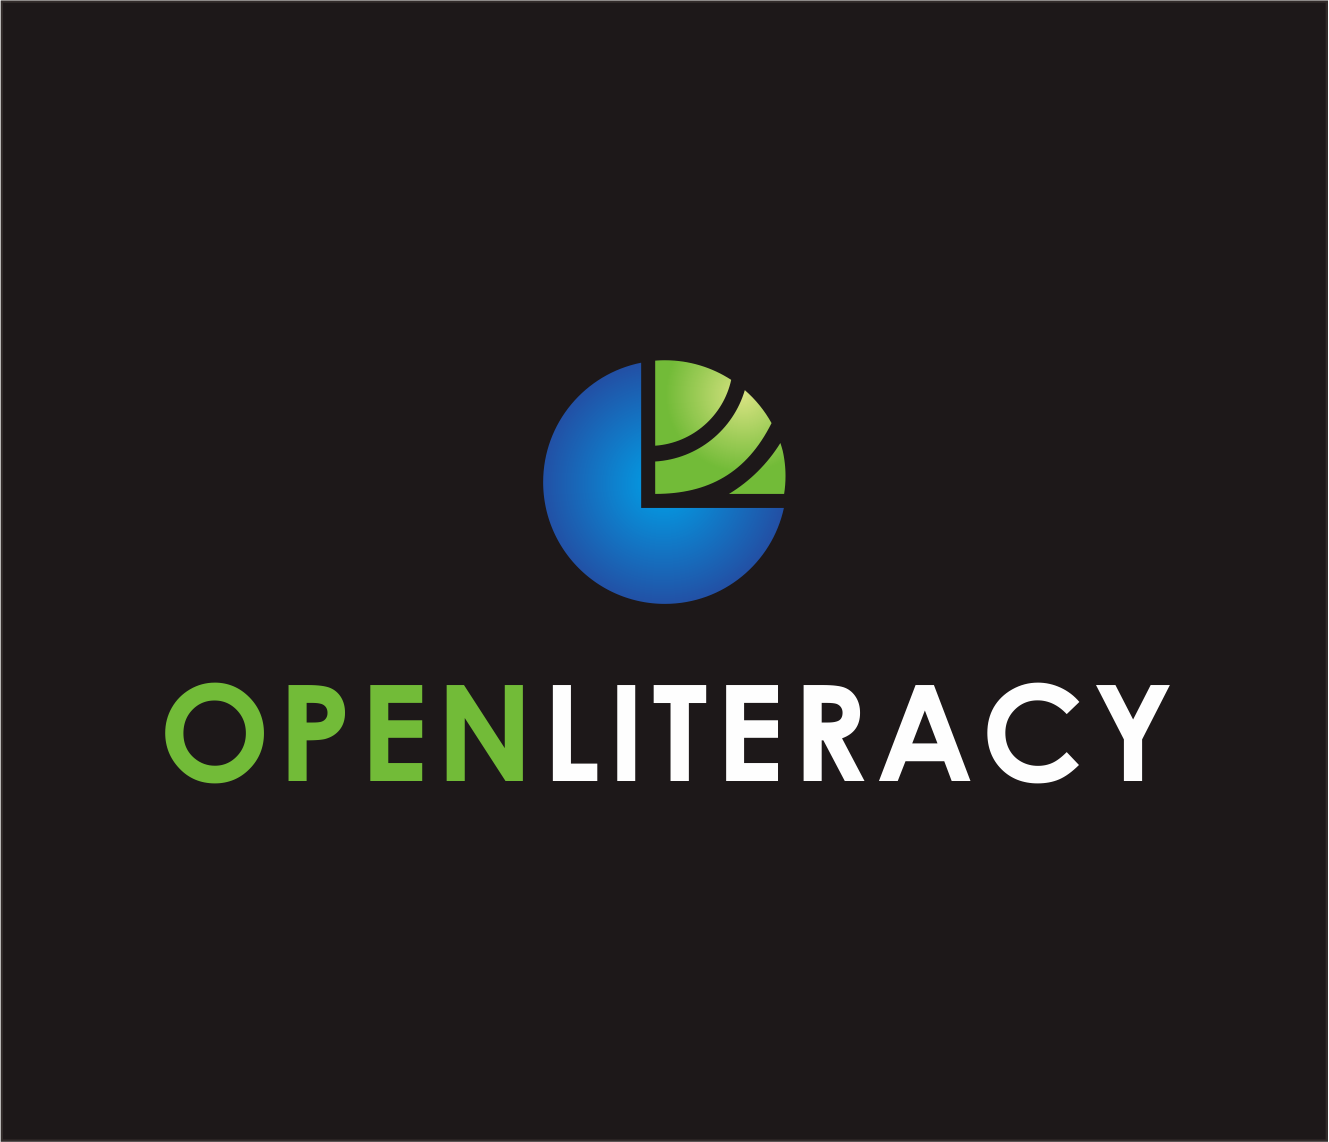 Logo Design by Armada Jamaluddin - Entry No. 90 in the Logo Design Contest Inspiring Logo Design for OpenLiteracy.